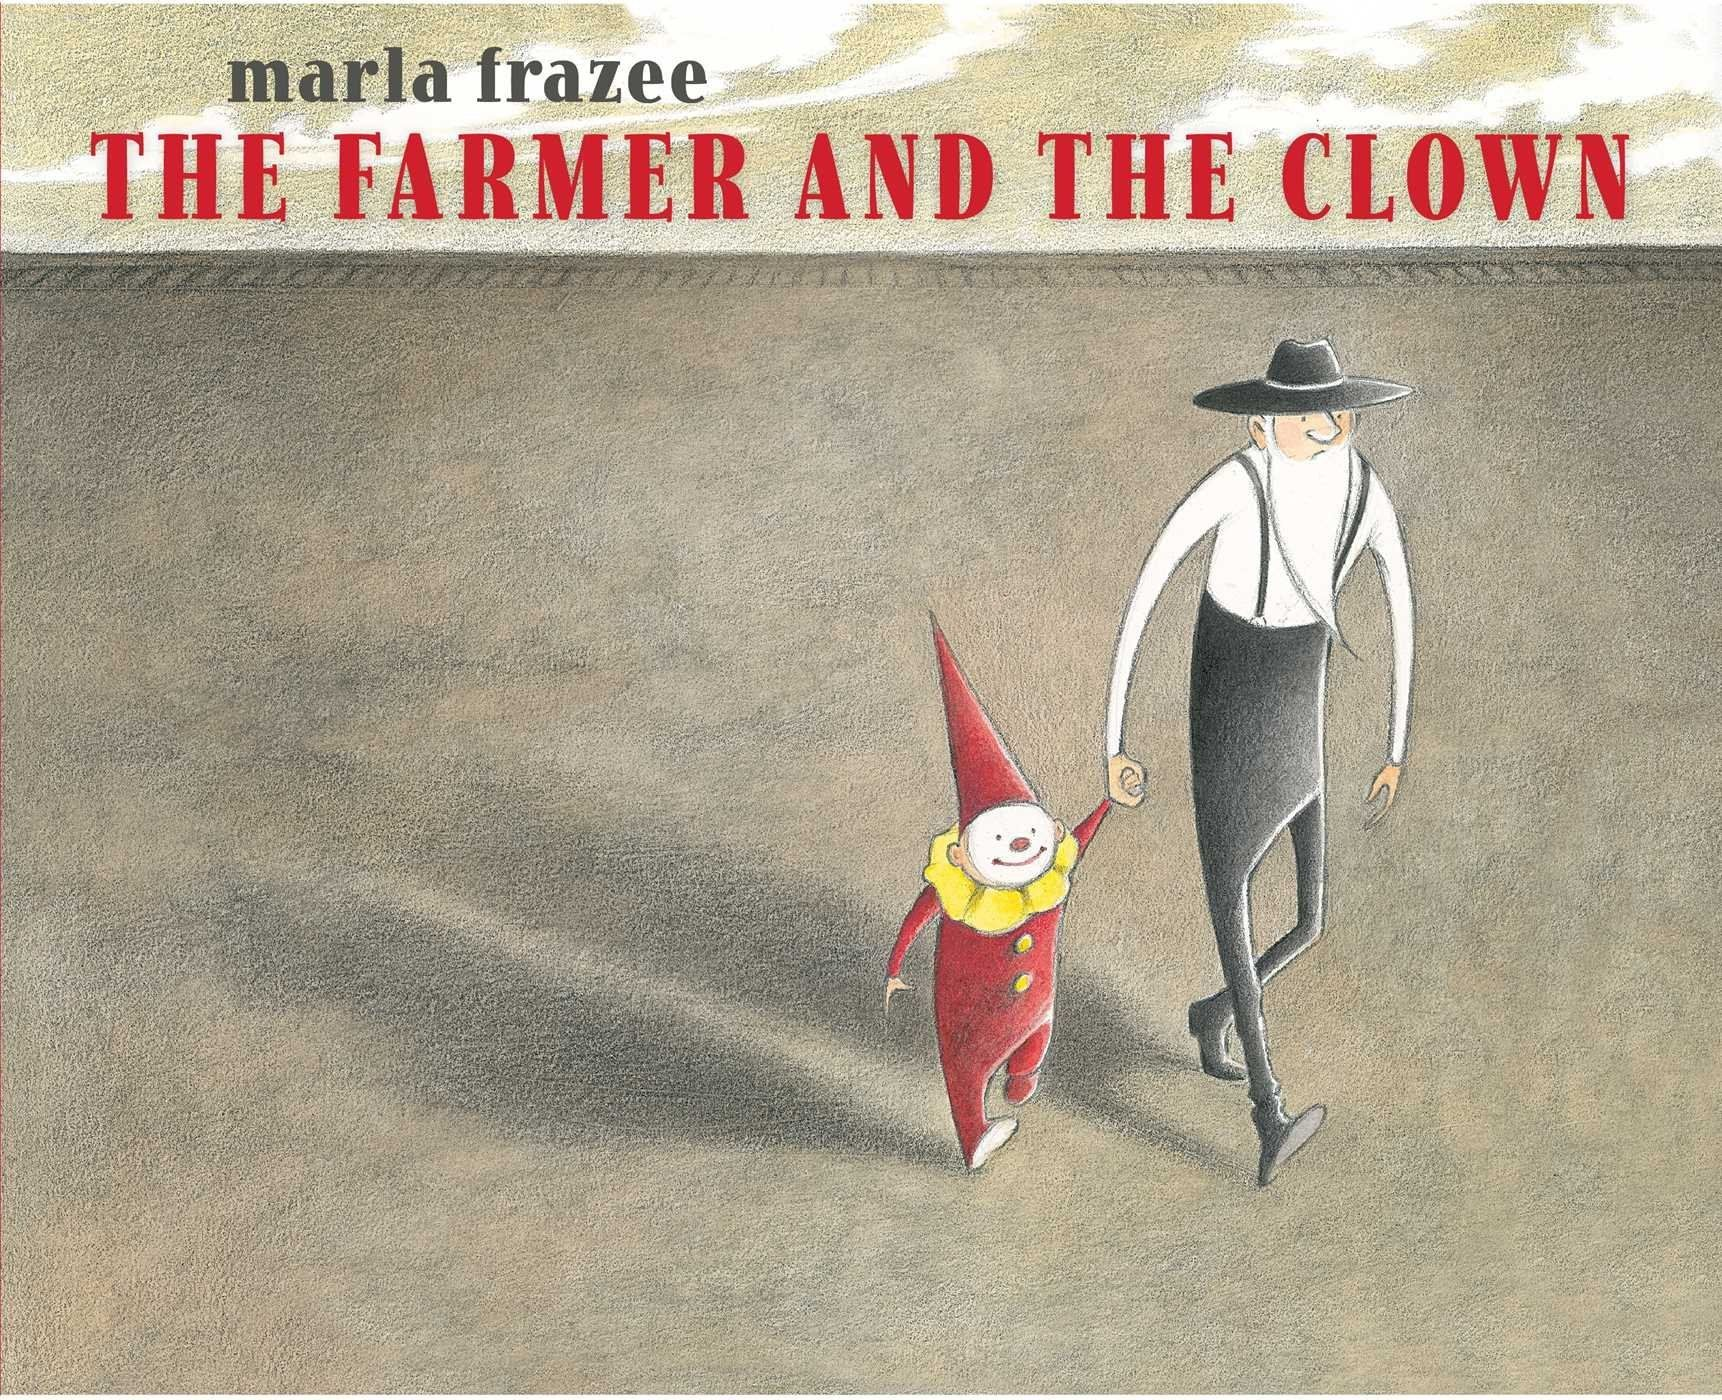 The Farmer and the Clown ALA Notable Children's Books. Younger Readers (Awards)